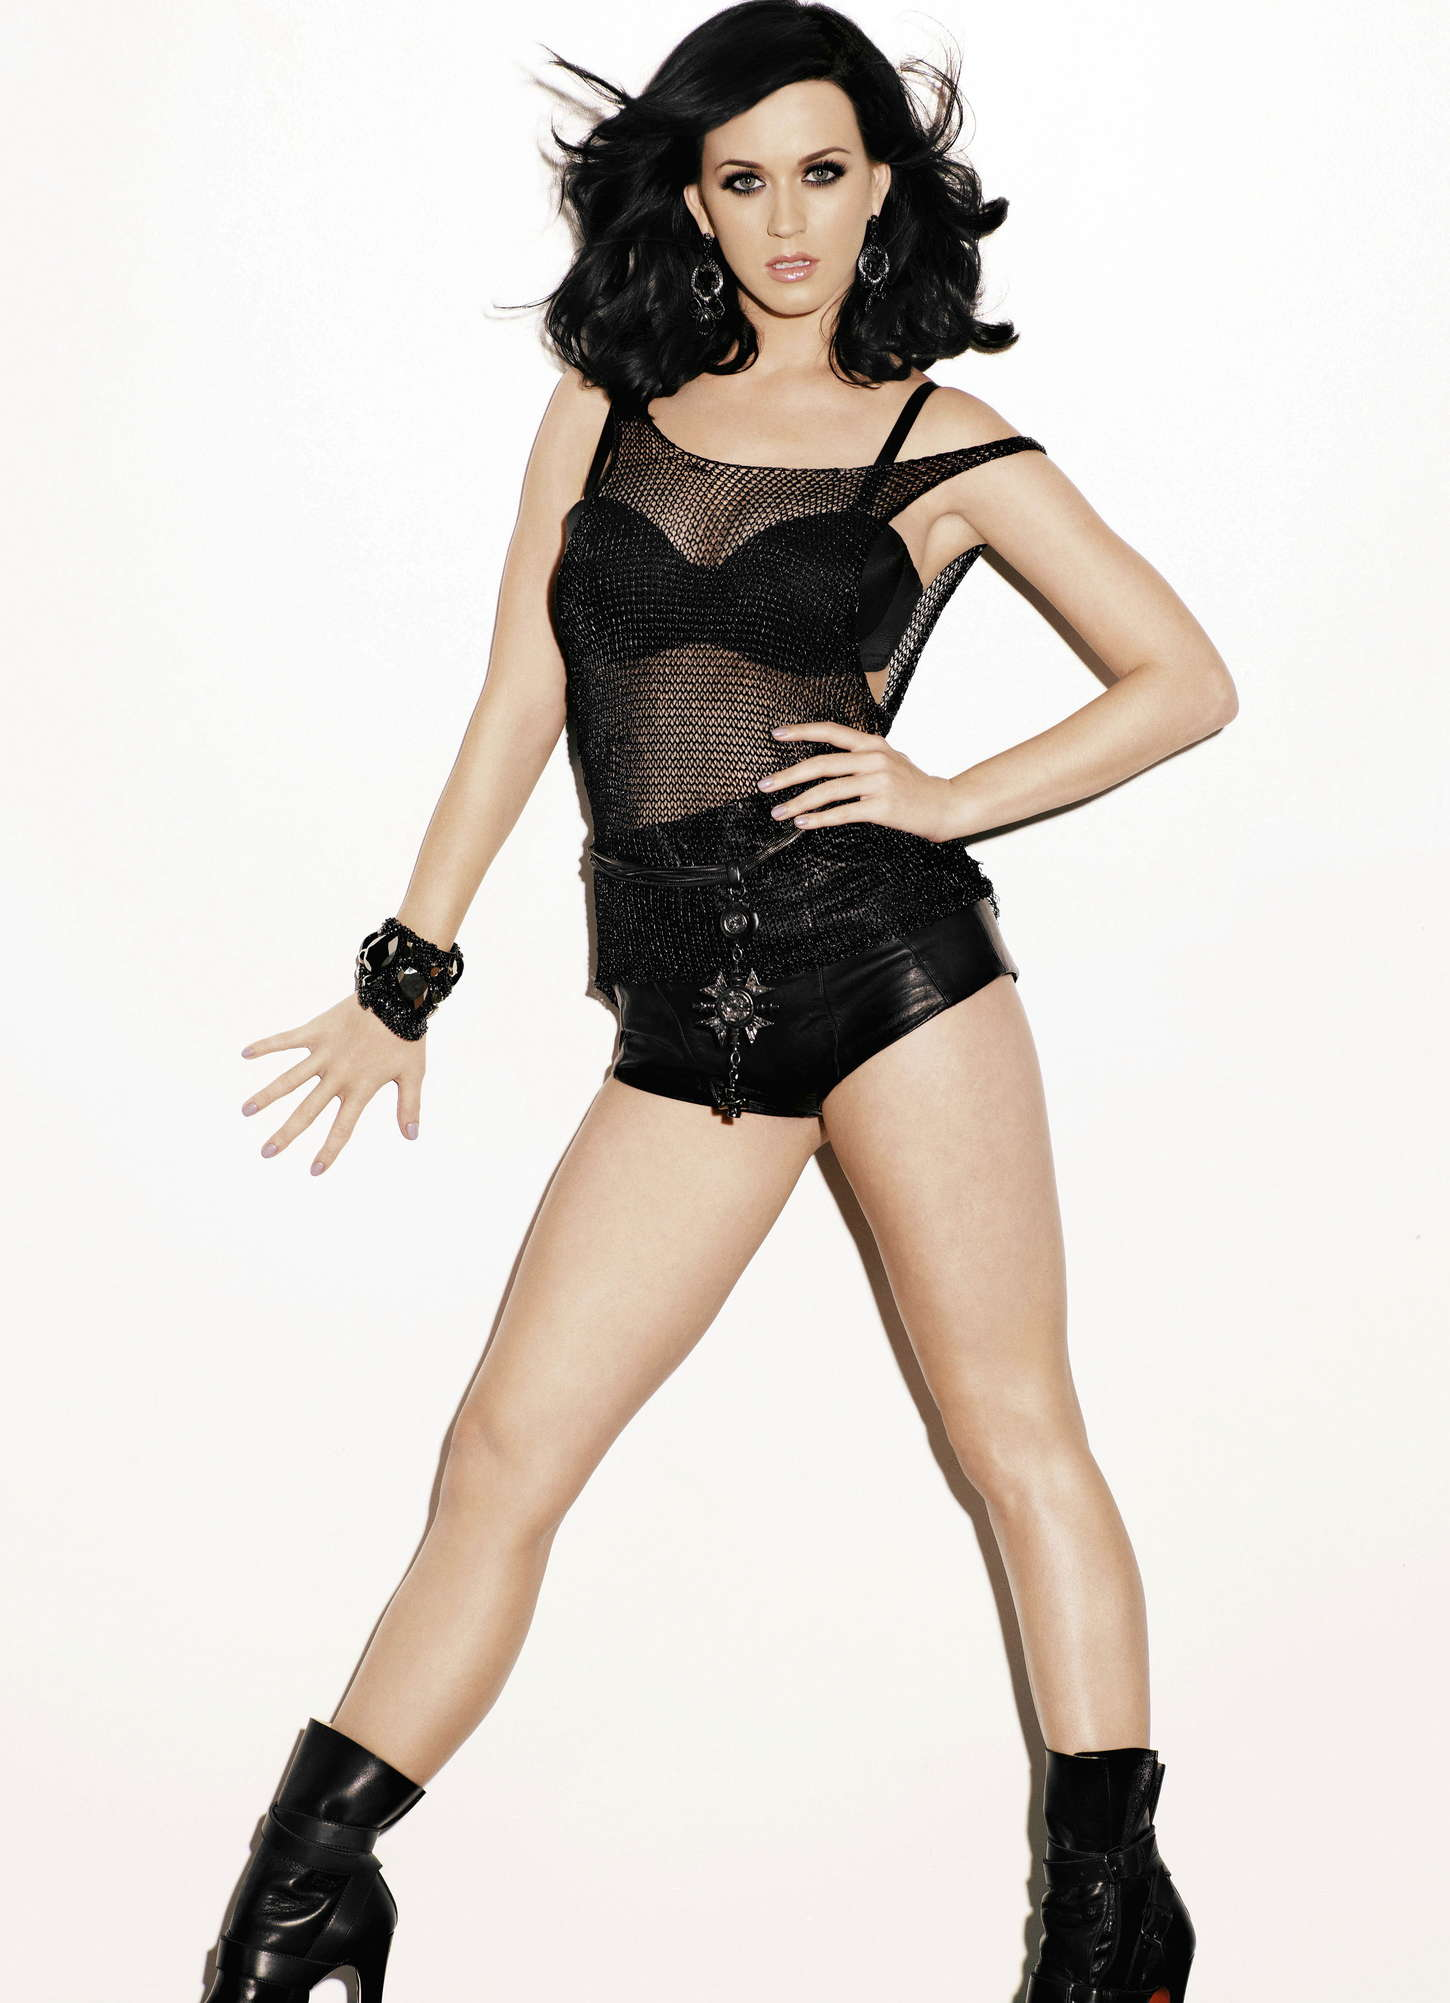 Katy Perry Hot Photoshoot 05 Gotceleb